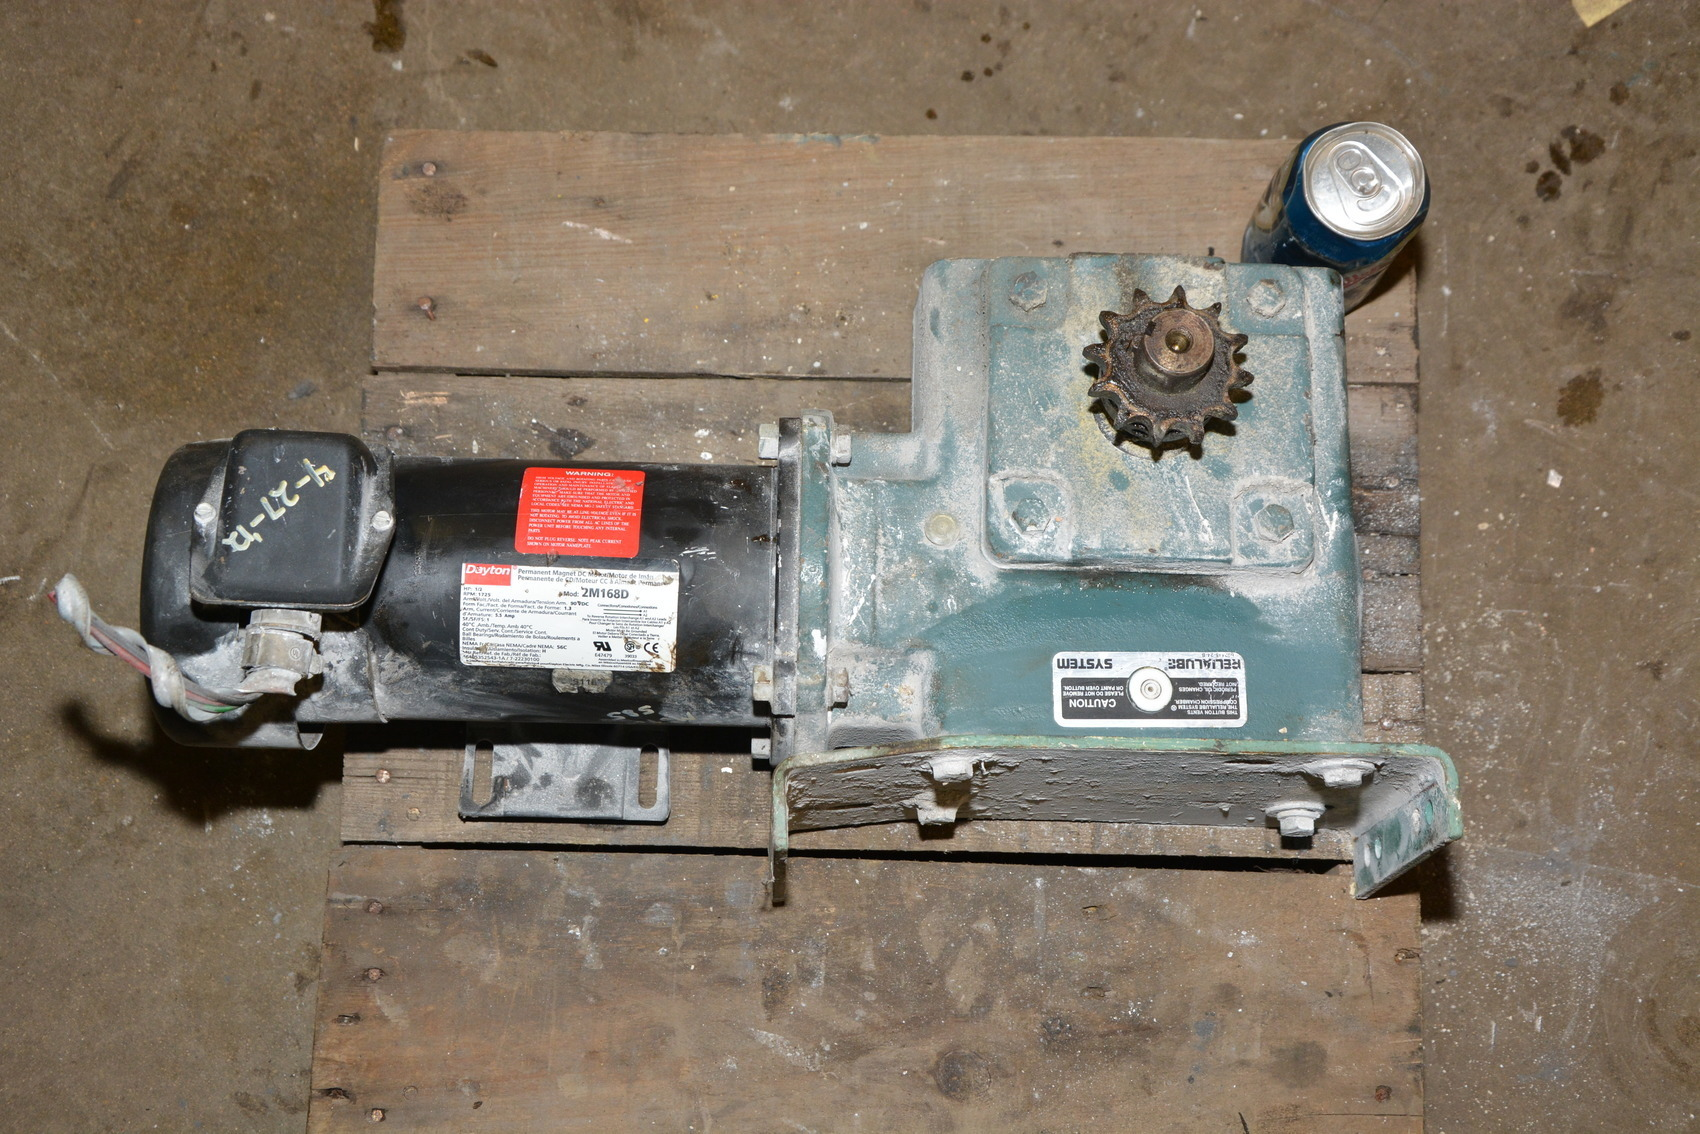 Tigear Mr94651zma 1 40 Gearmotor Dayton 1 2 Hp Electric Dc Gear Motor Inv 18507 Ebay